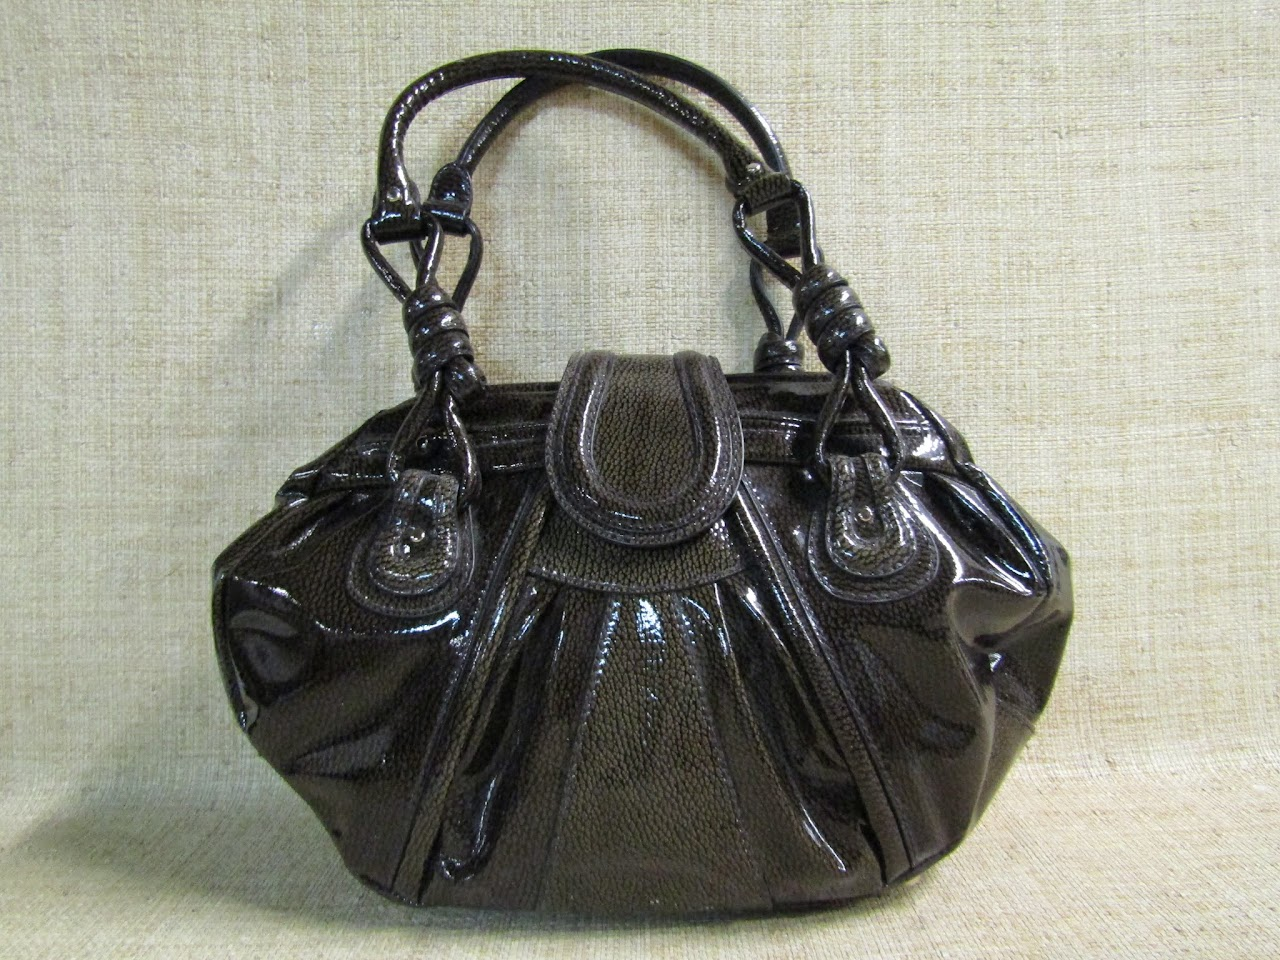 LoefFer Randall Patent Shoulder Bag